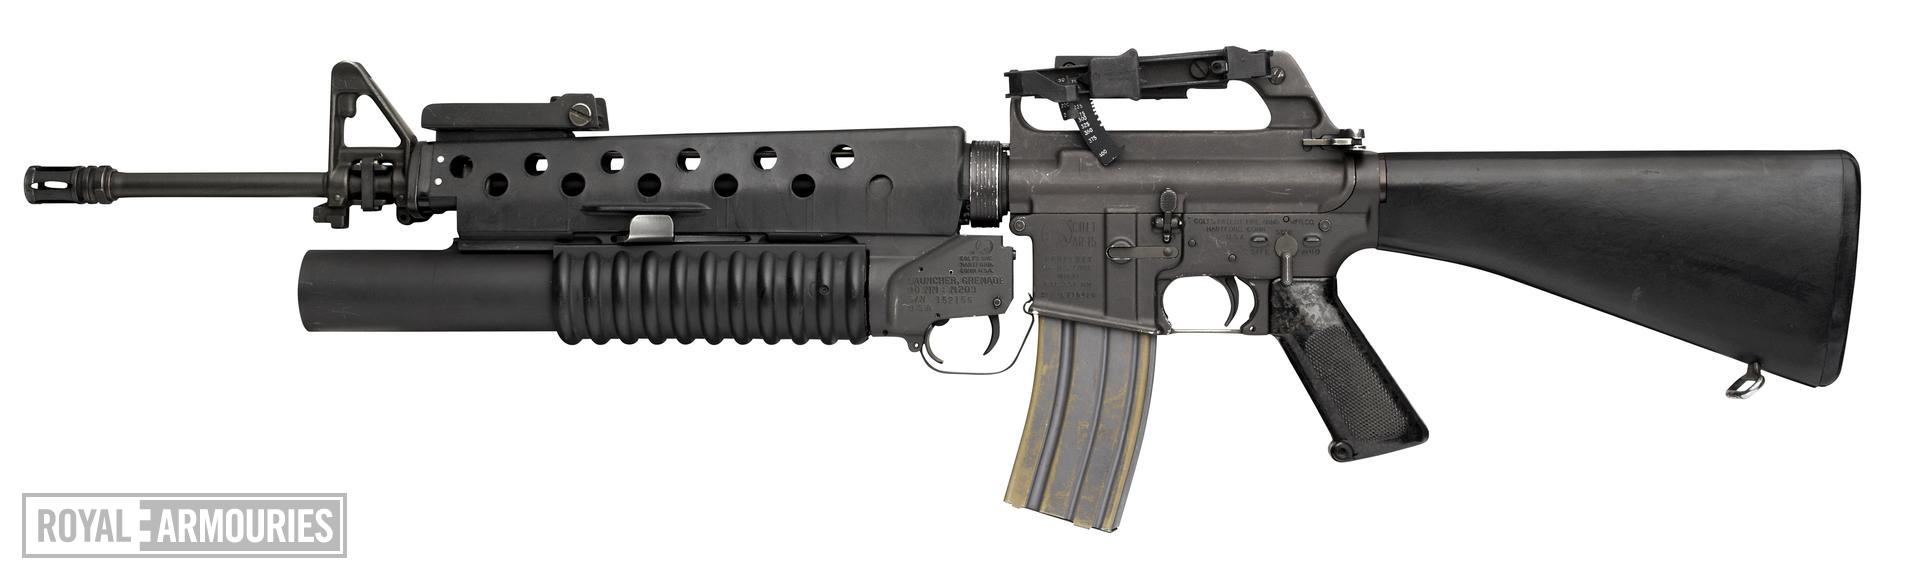 Centrefire breech-loading grenade launcher - M203 For M16 rifle